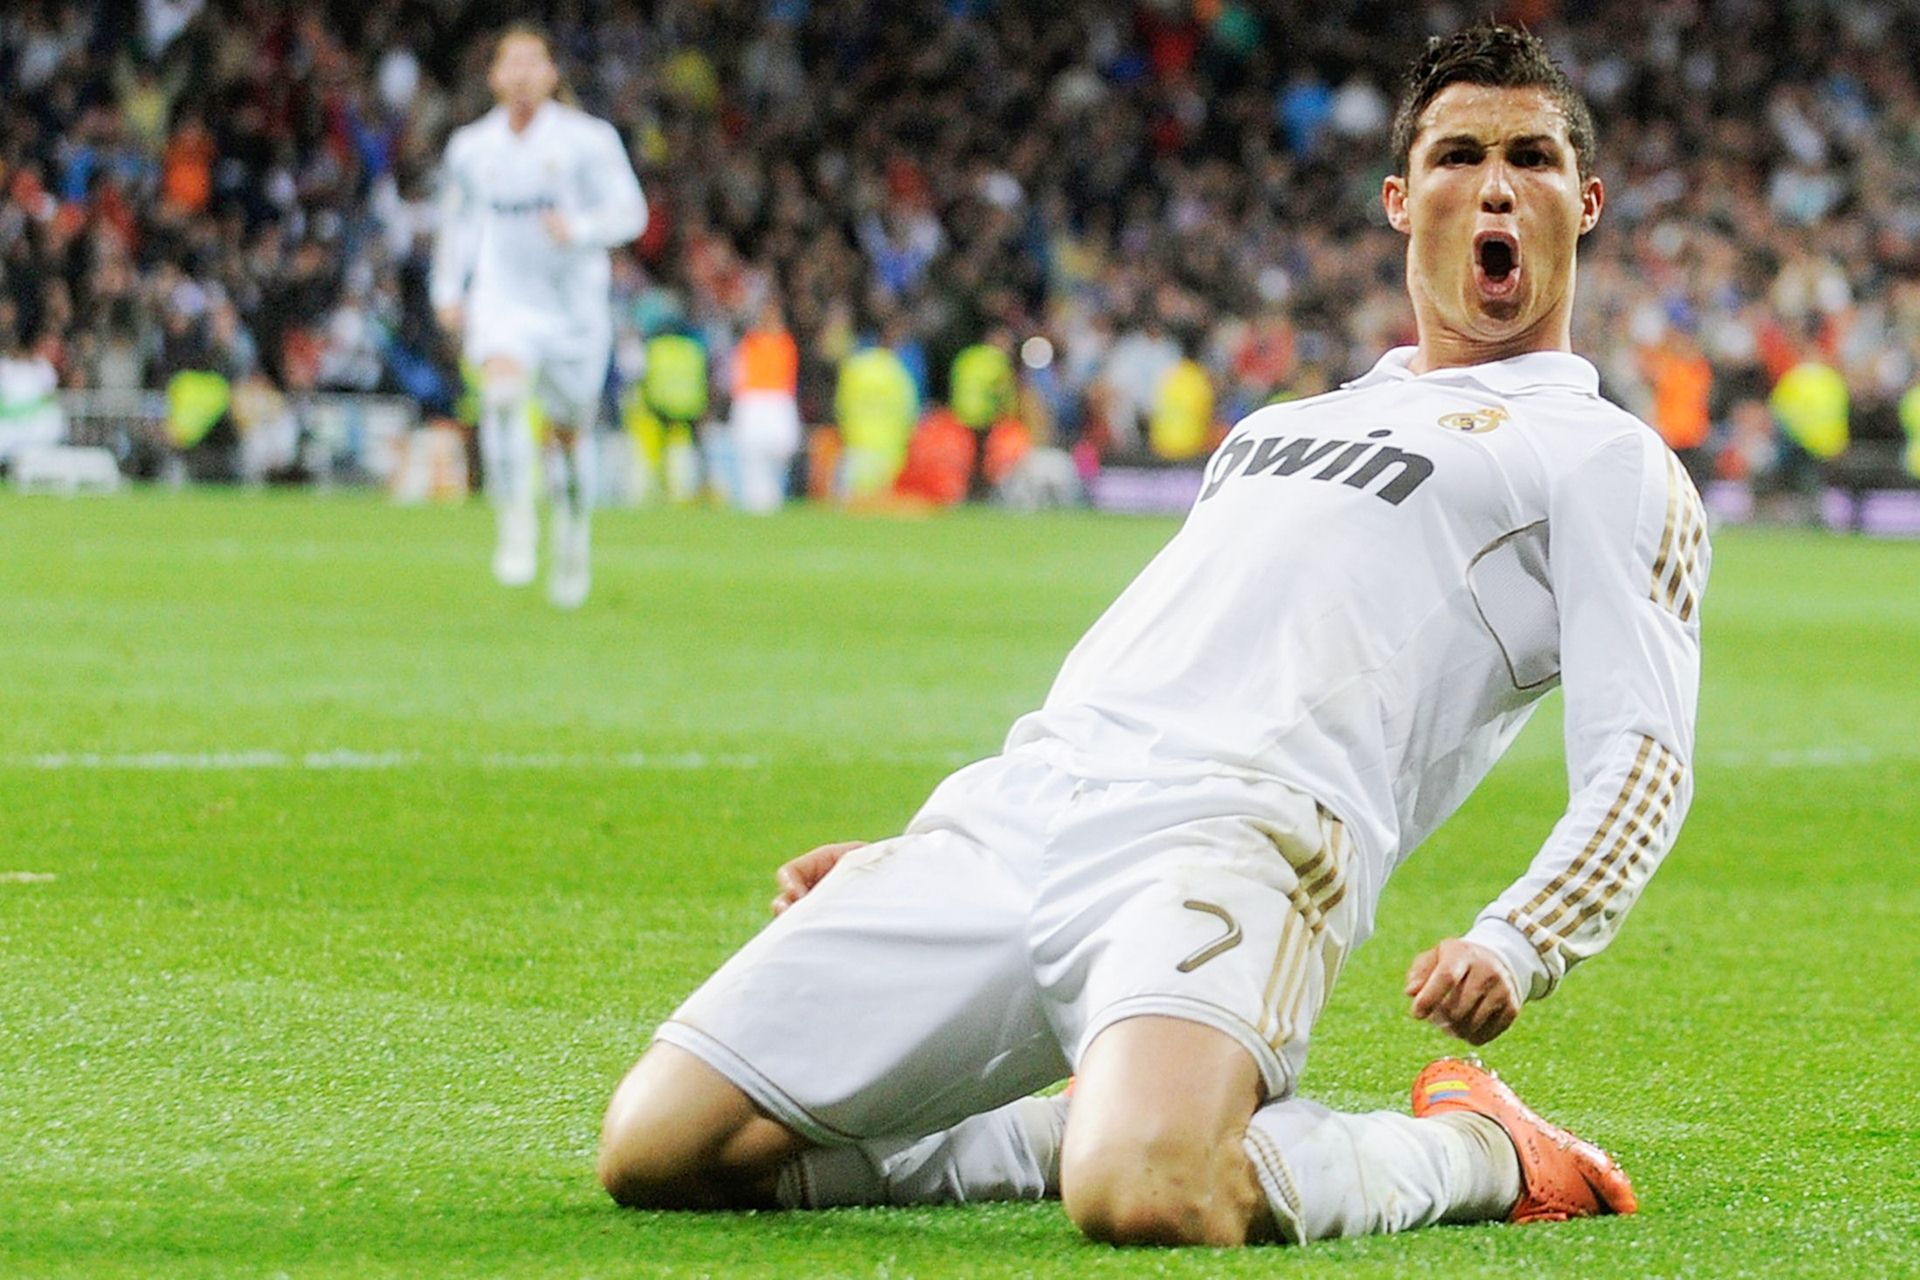 Cristiano Ronaldo Wallpapers HD A24